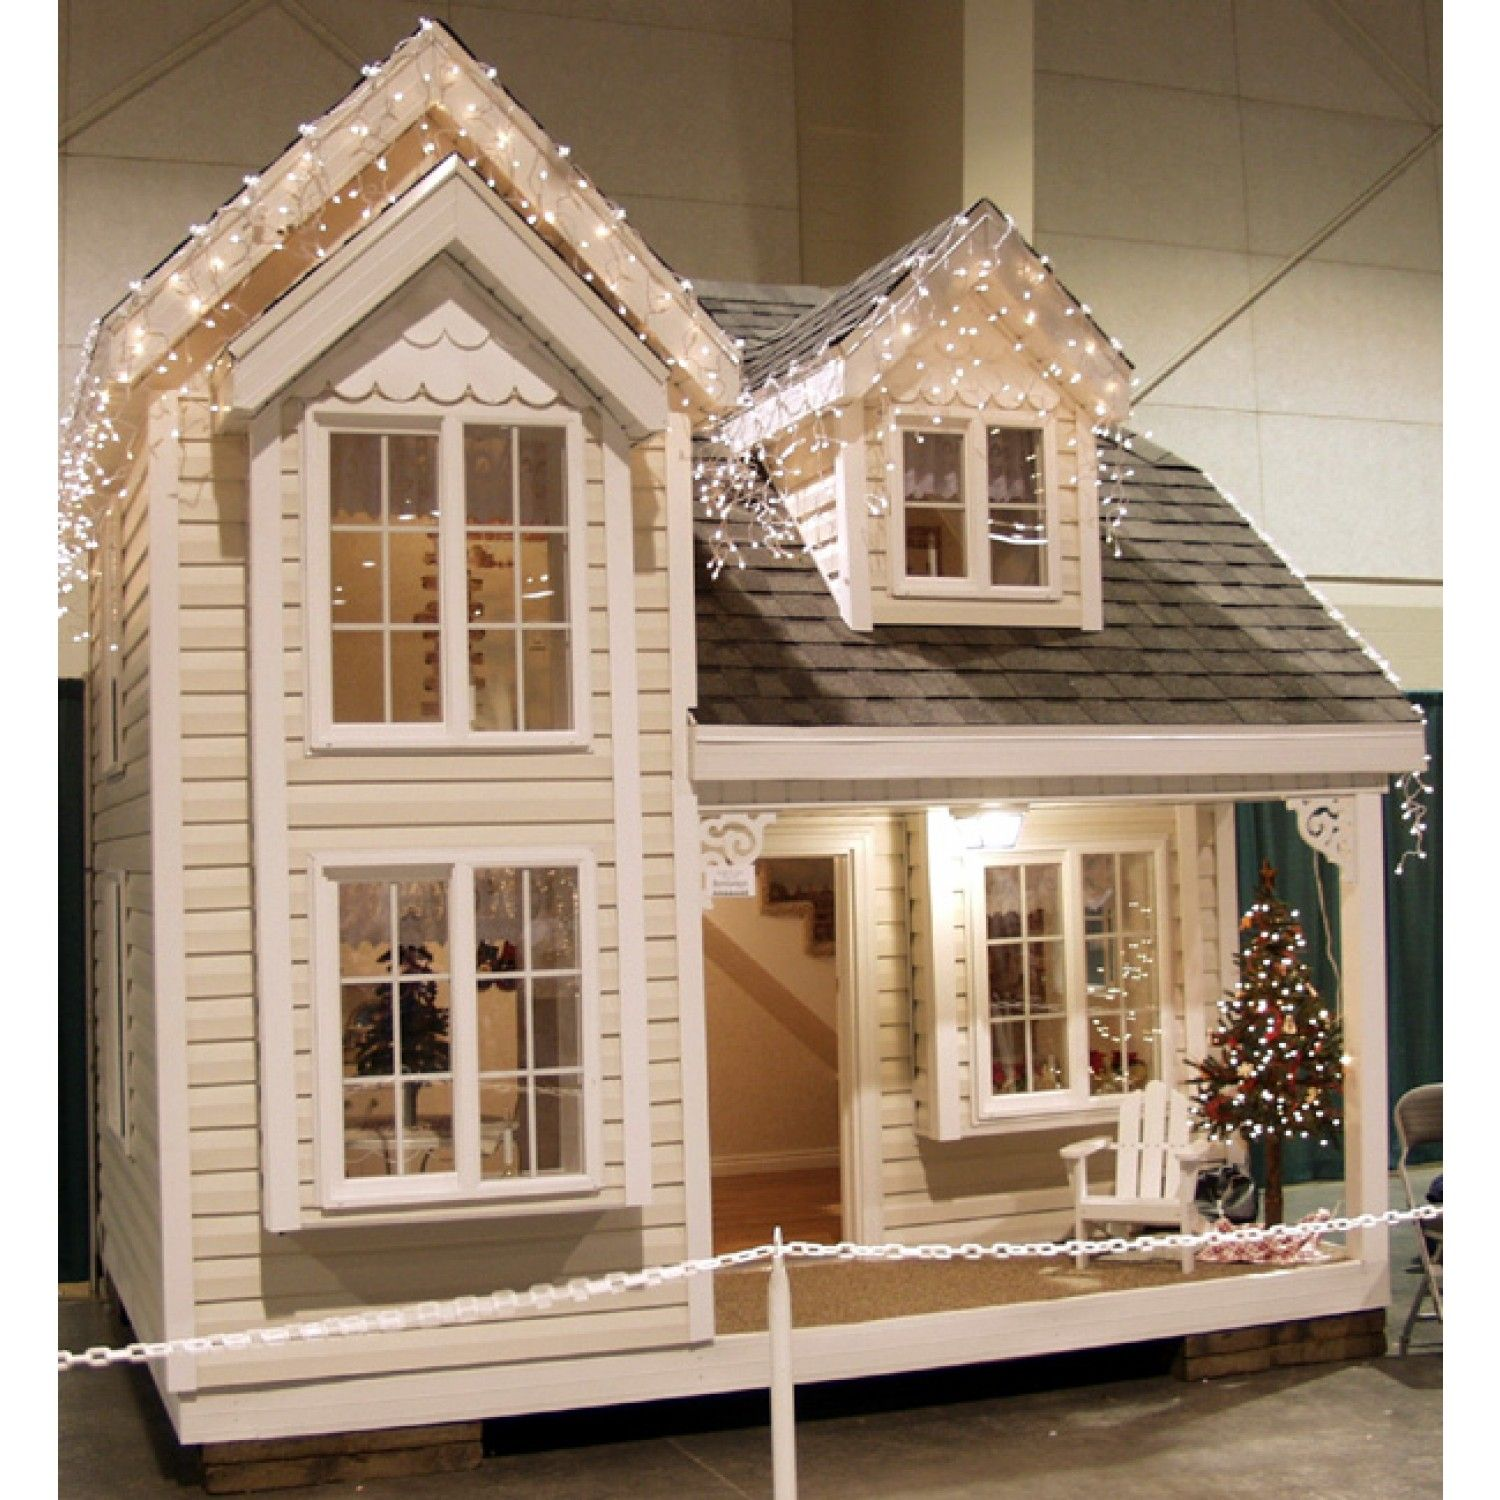 Cottage playhouse Front View | Baby | Pinterest ...